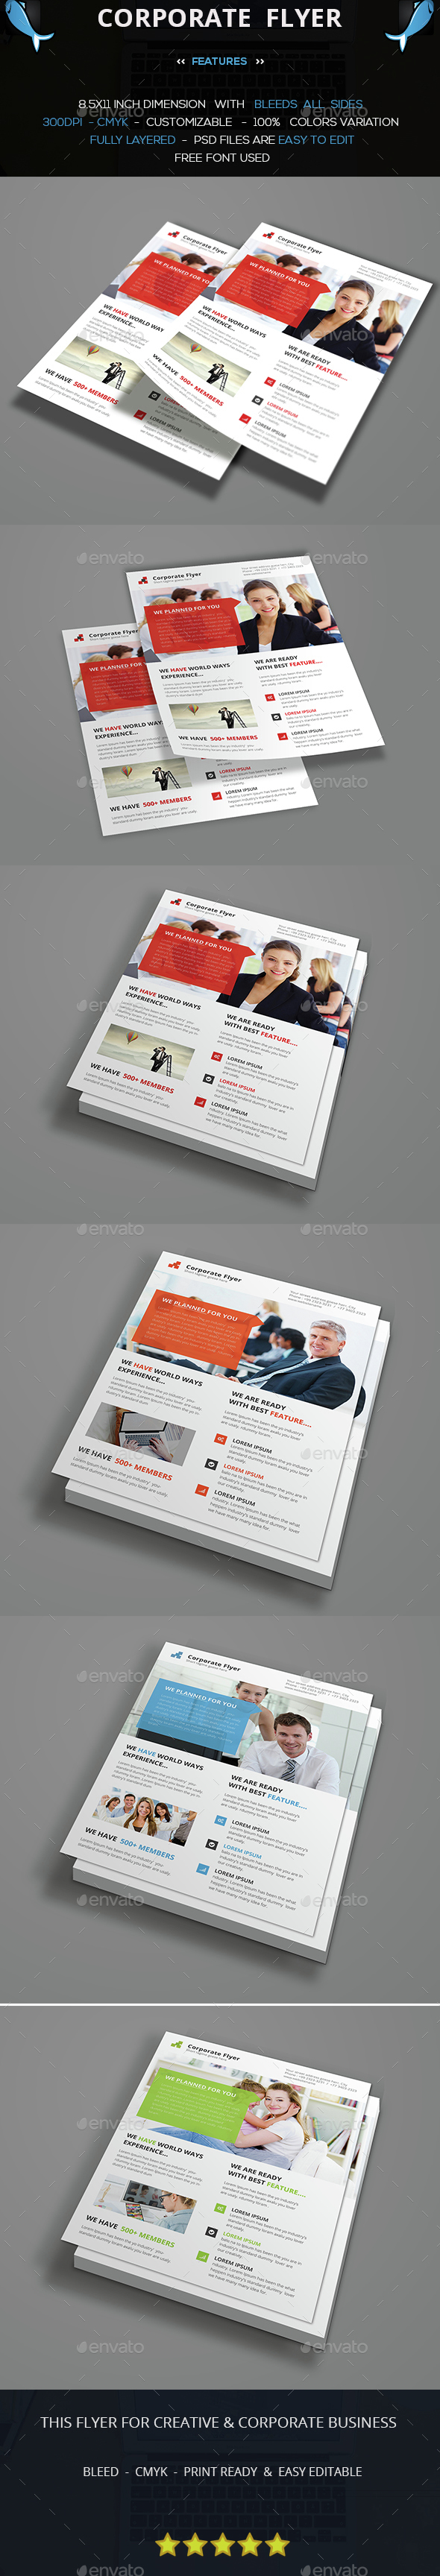 Simply Flyer Template - Corporate Flyers